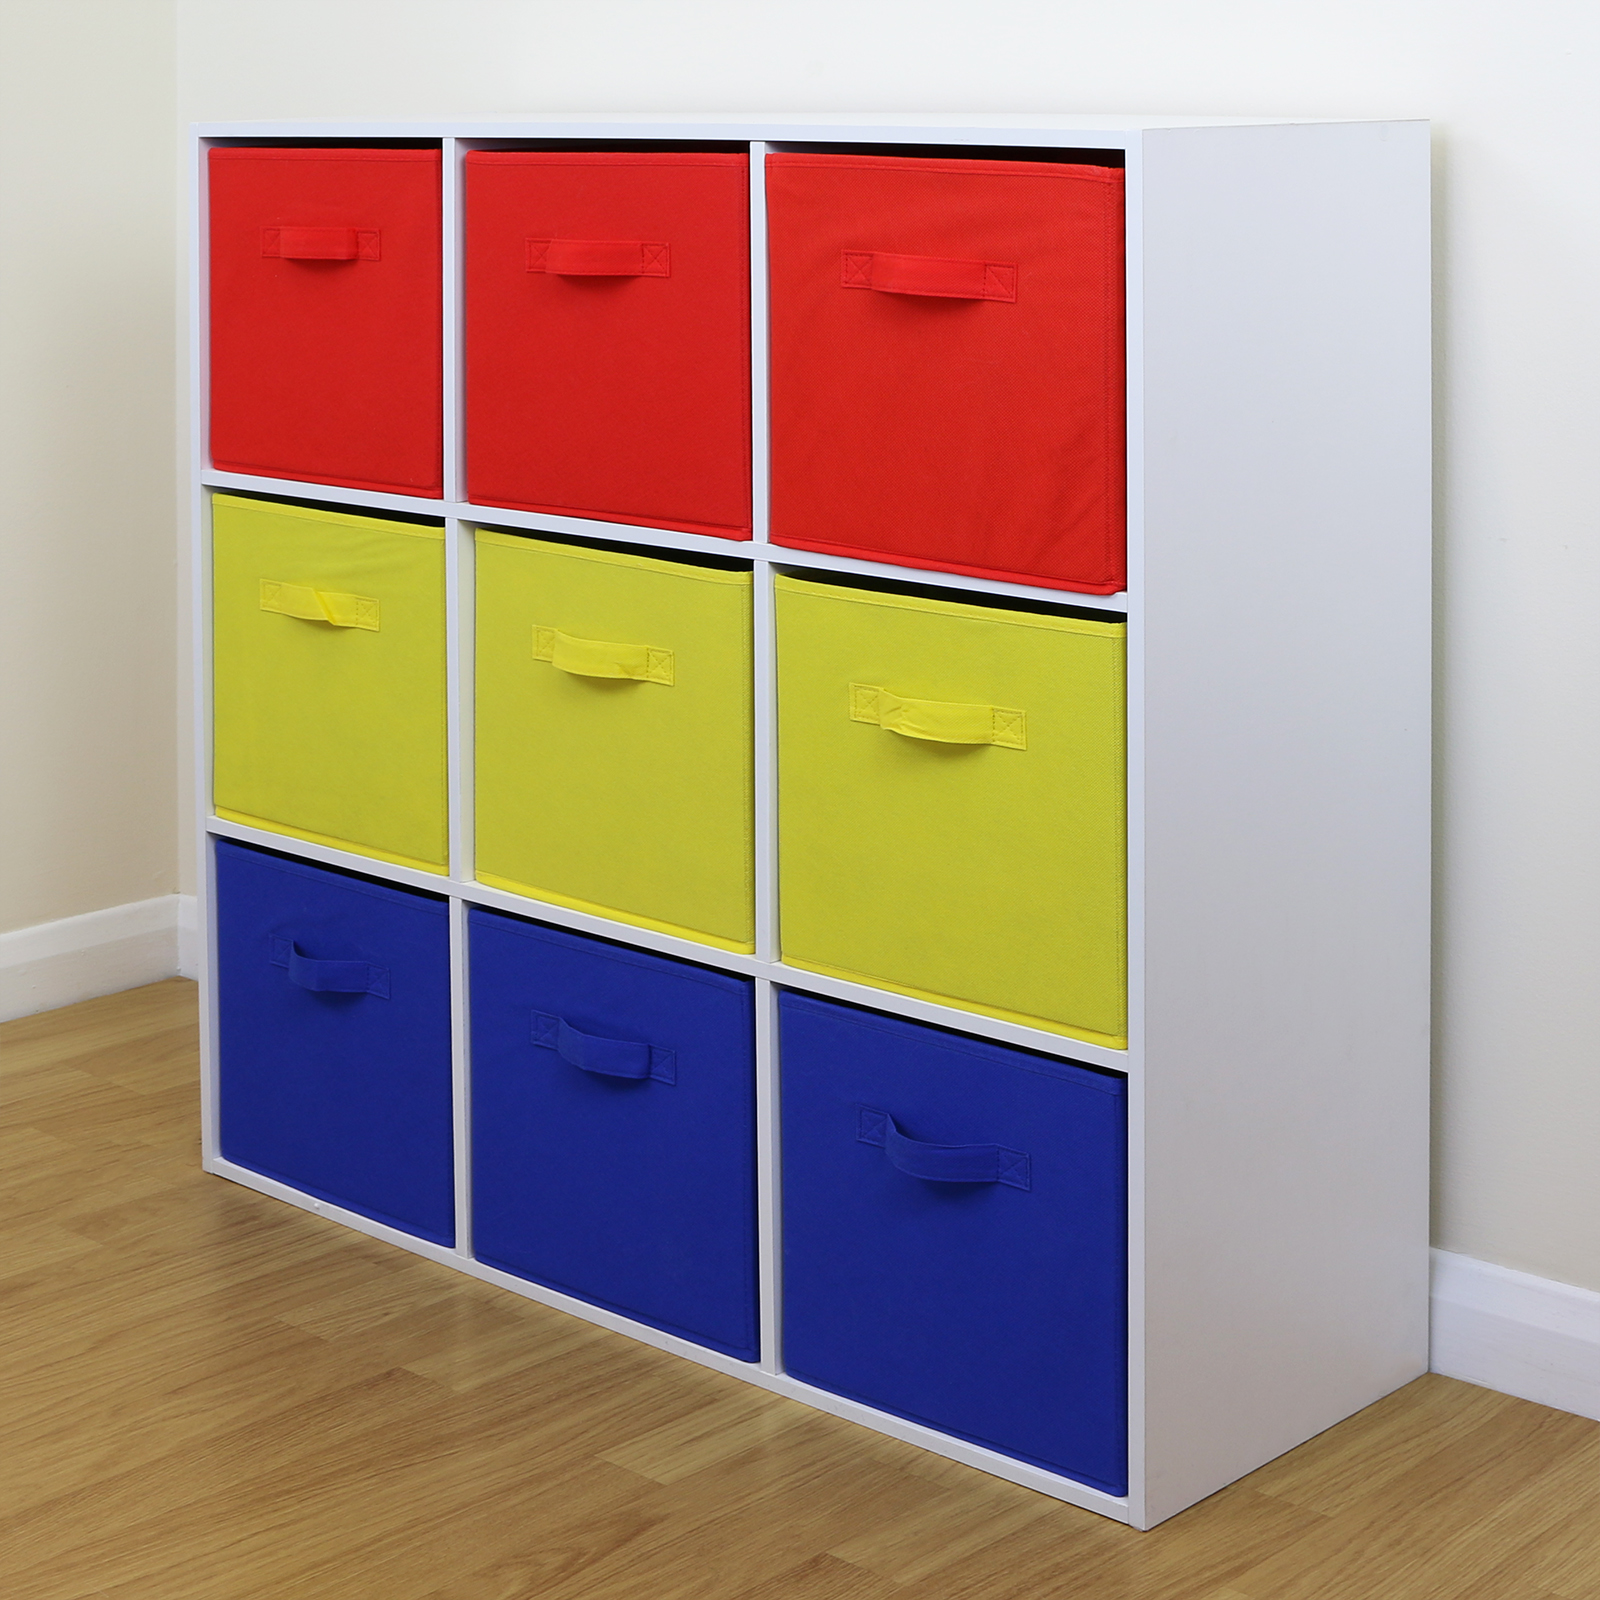 9 Cube Kids Red Yellow Blue Toy Games Storage Unit Girls